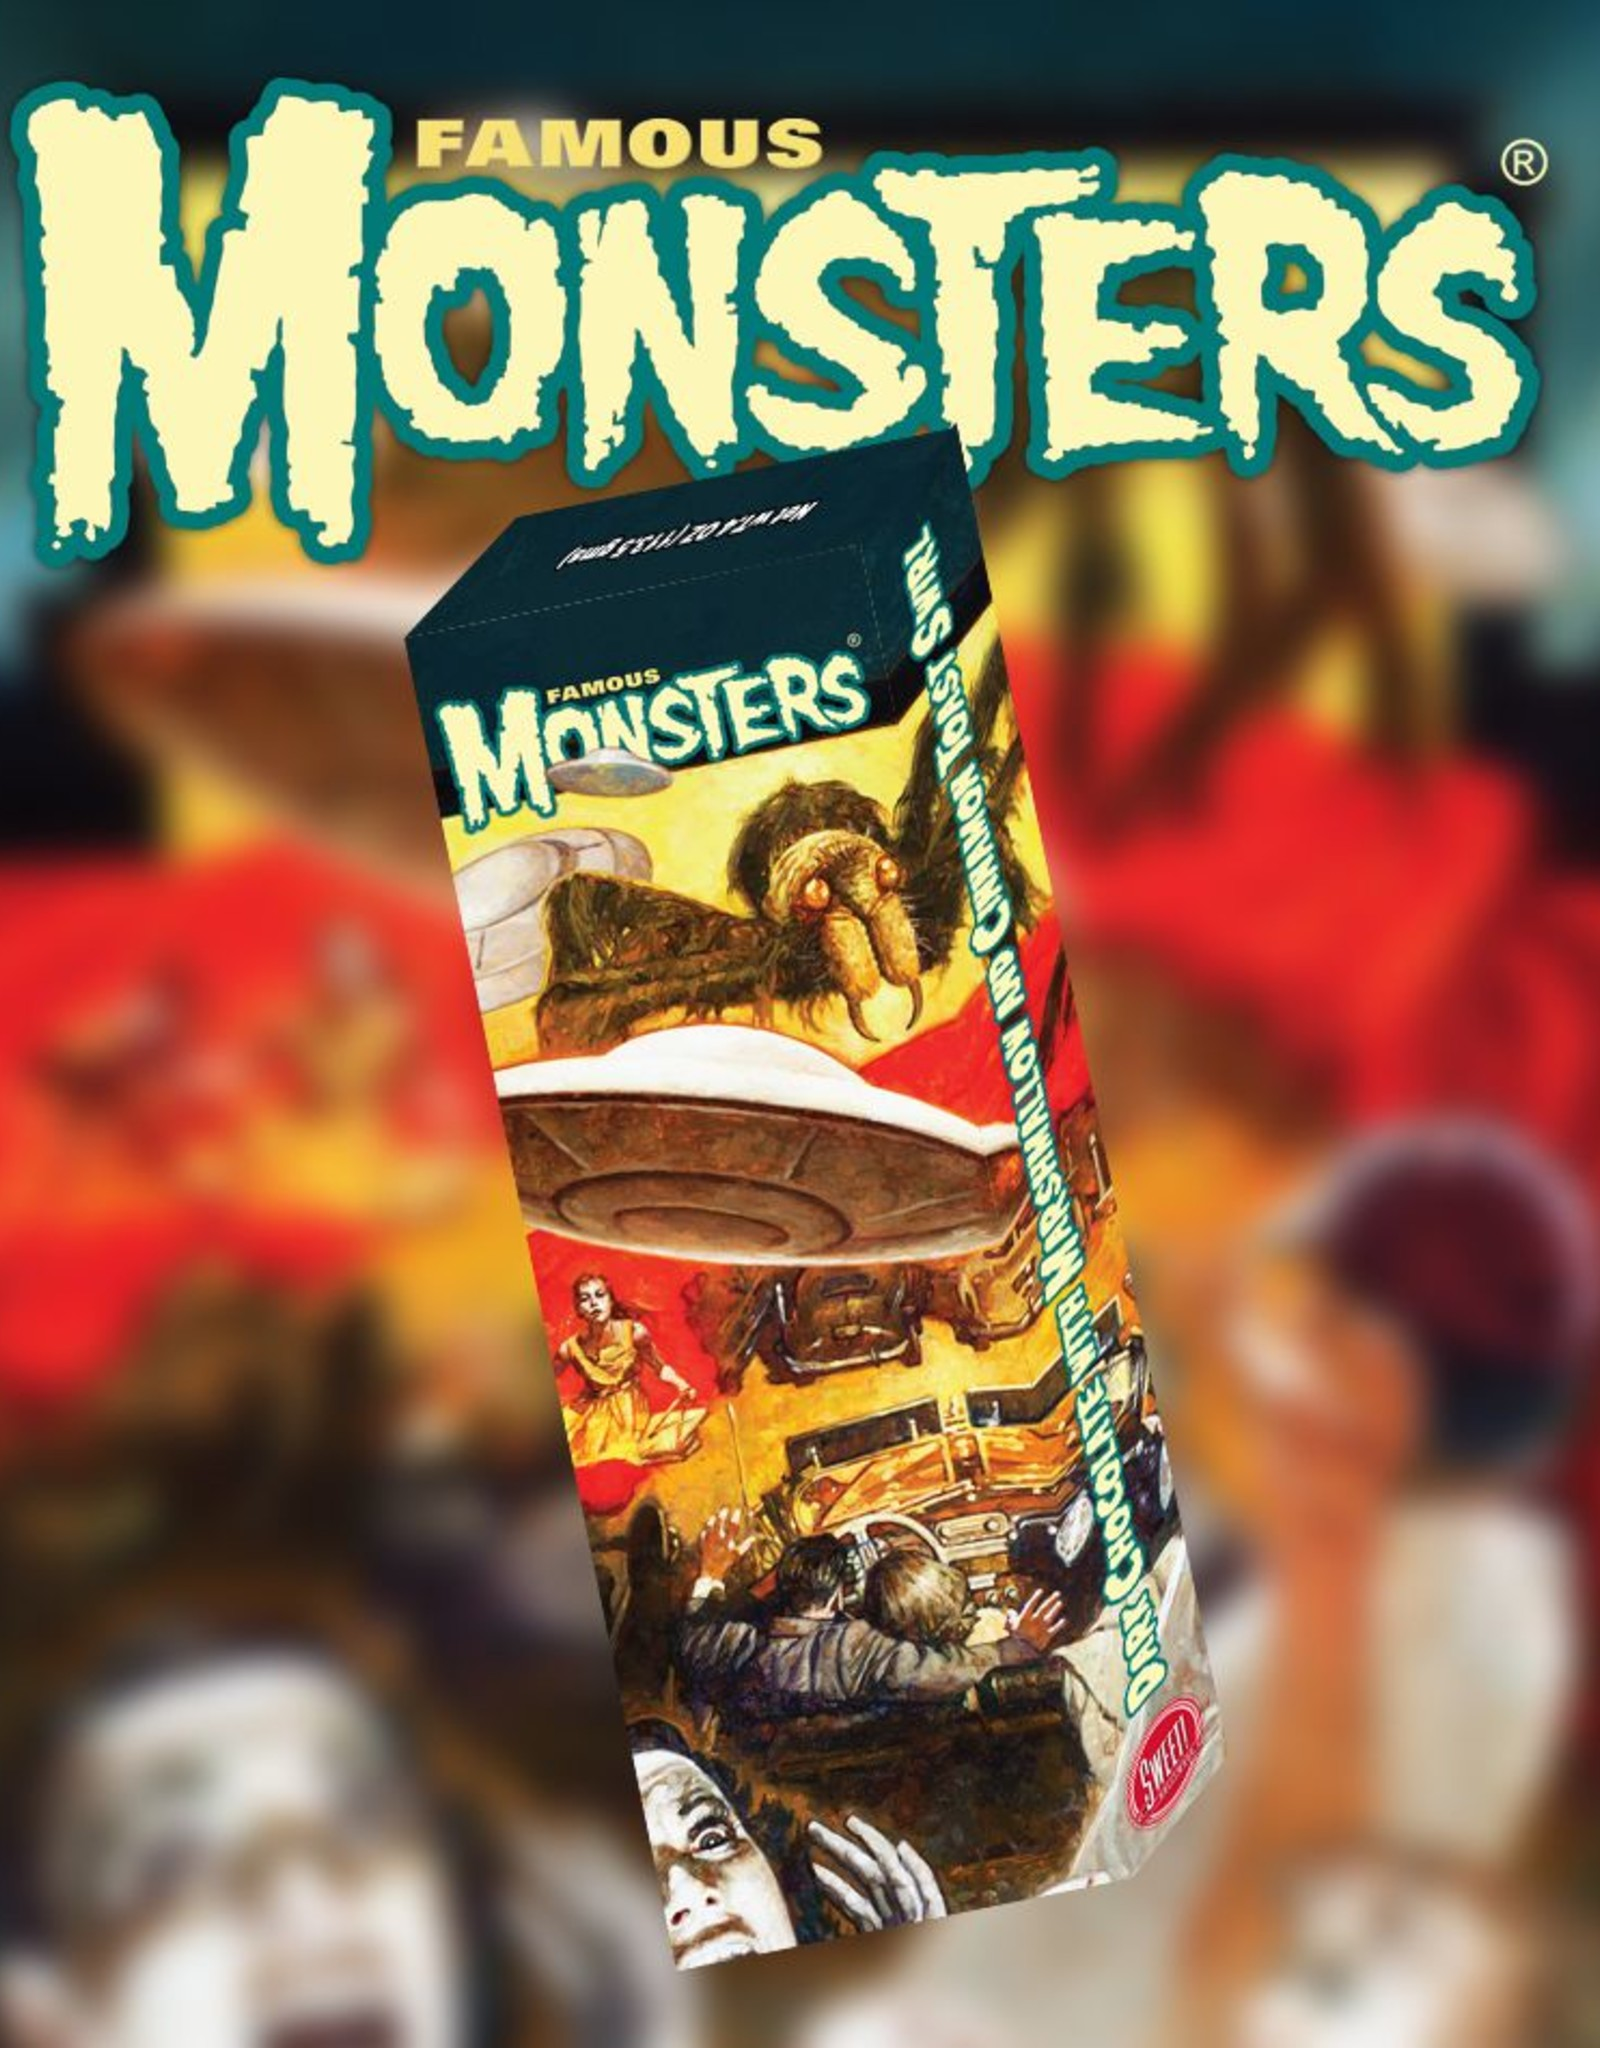 Famous Monsters Bar - Spider & Aliens